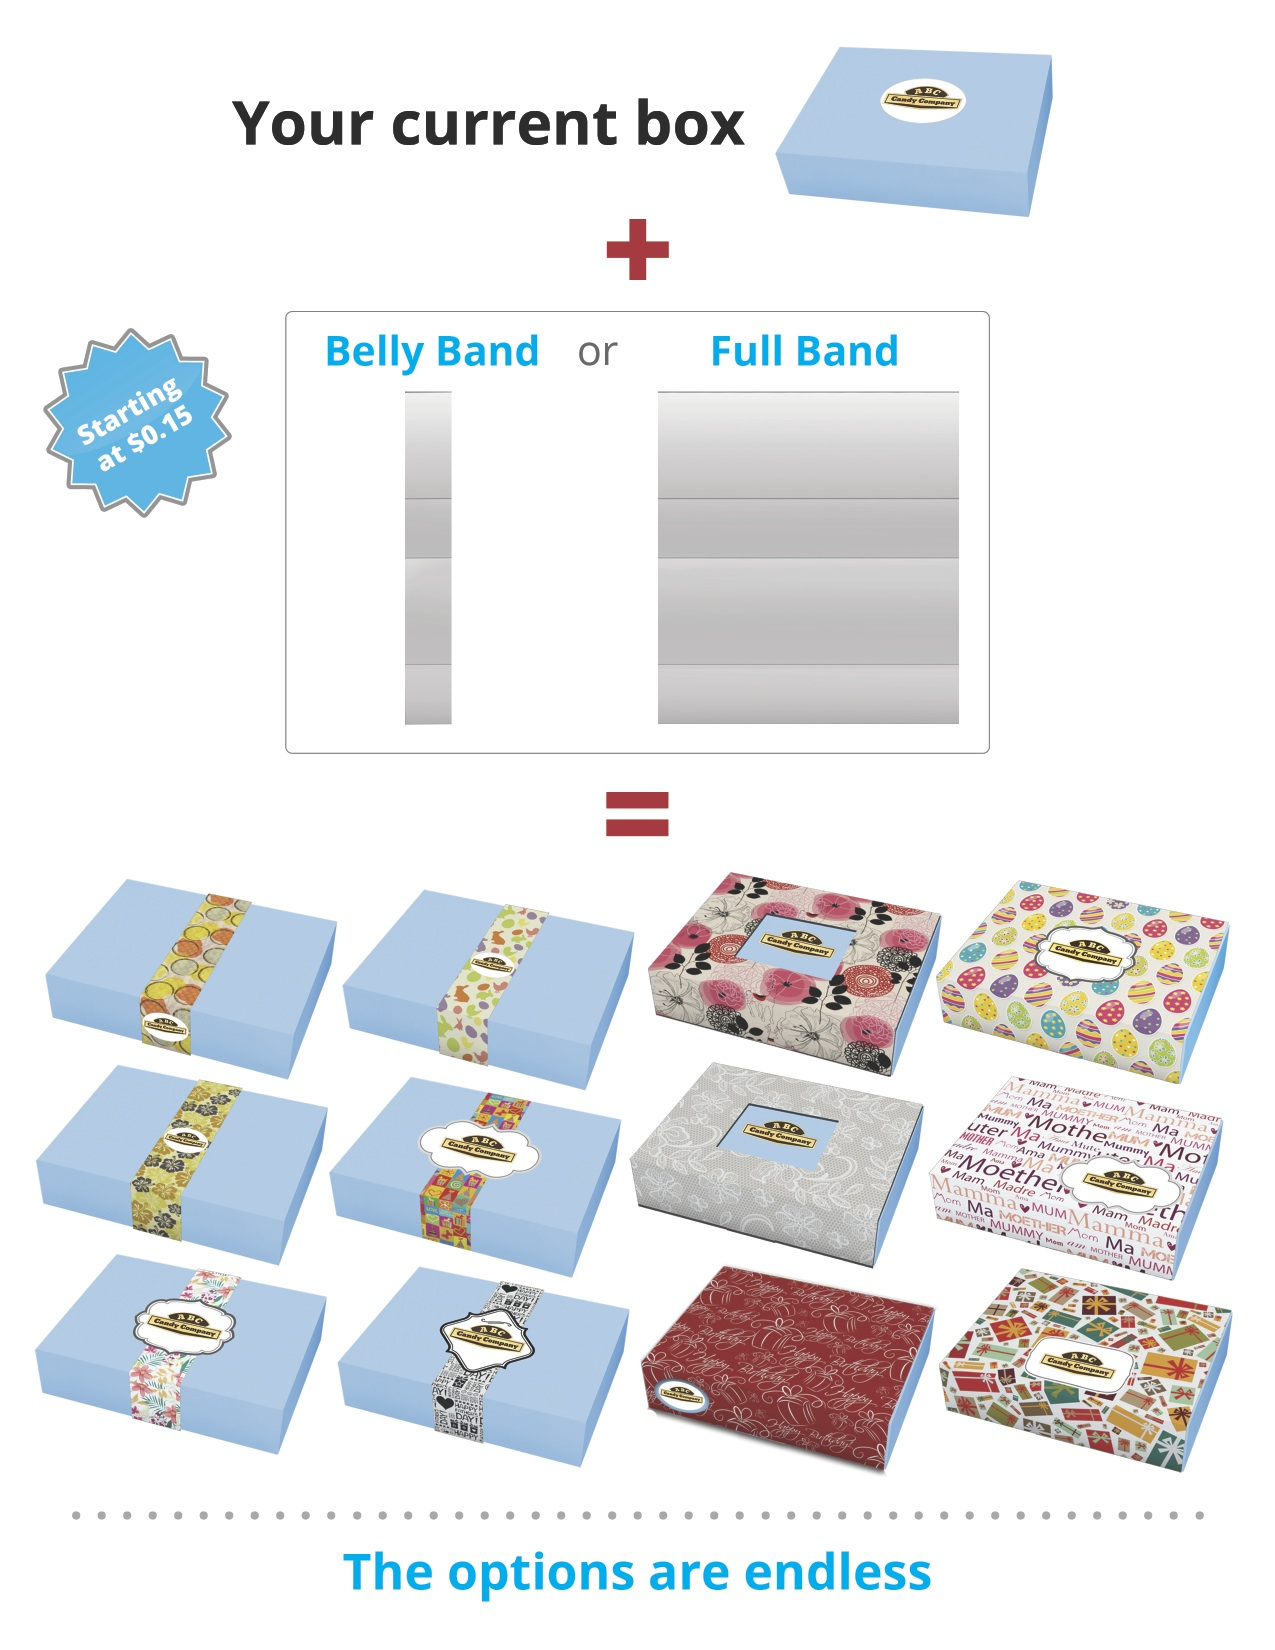 **Offer multiple ways to gift your products**. Box Bands